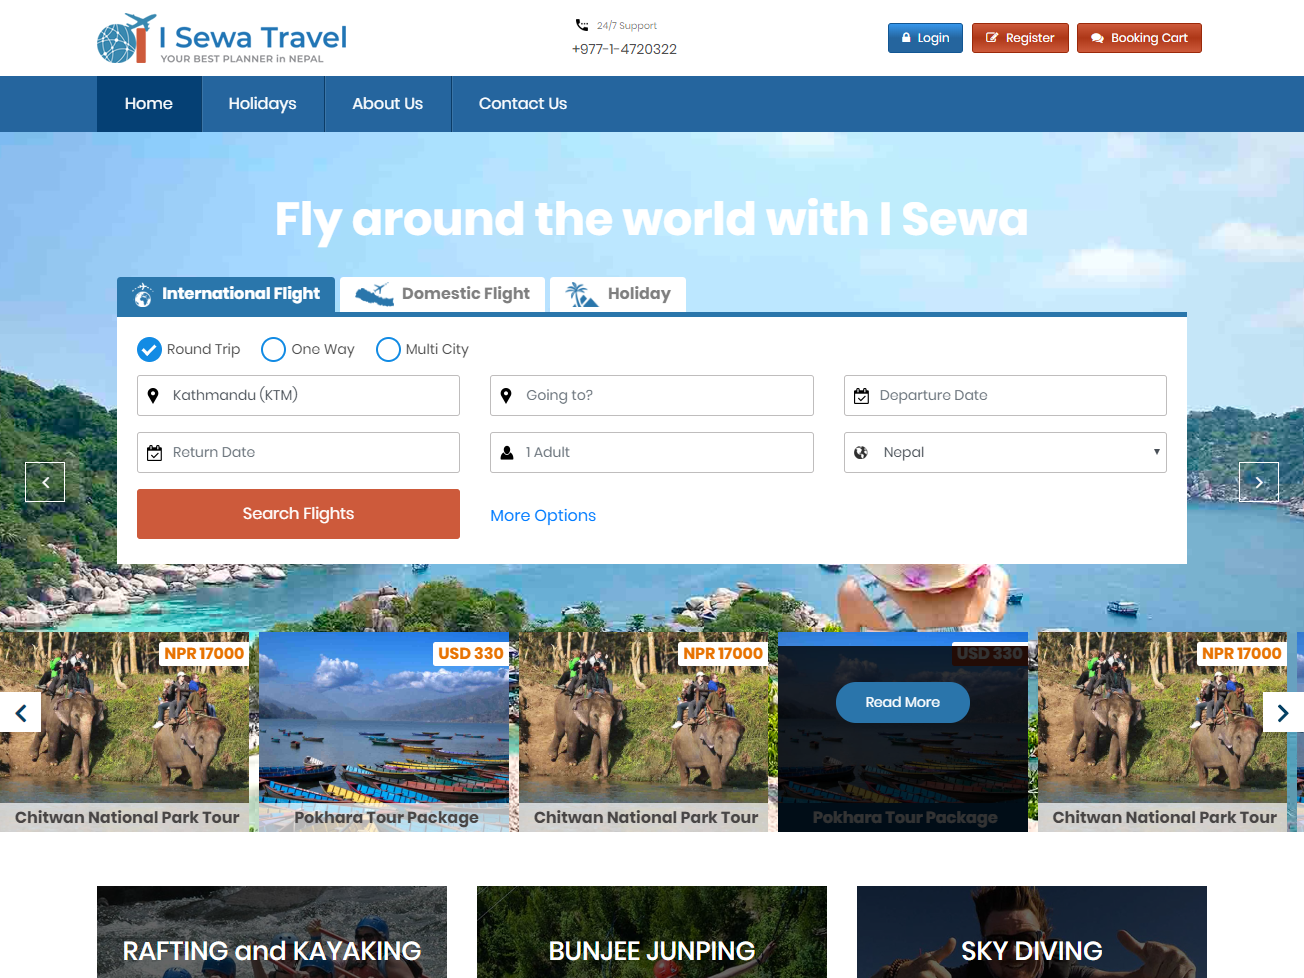 I-Sewa-Travel Sasto-Online-Air-Ticketing-Service-in-Nepal